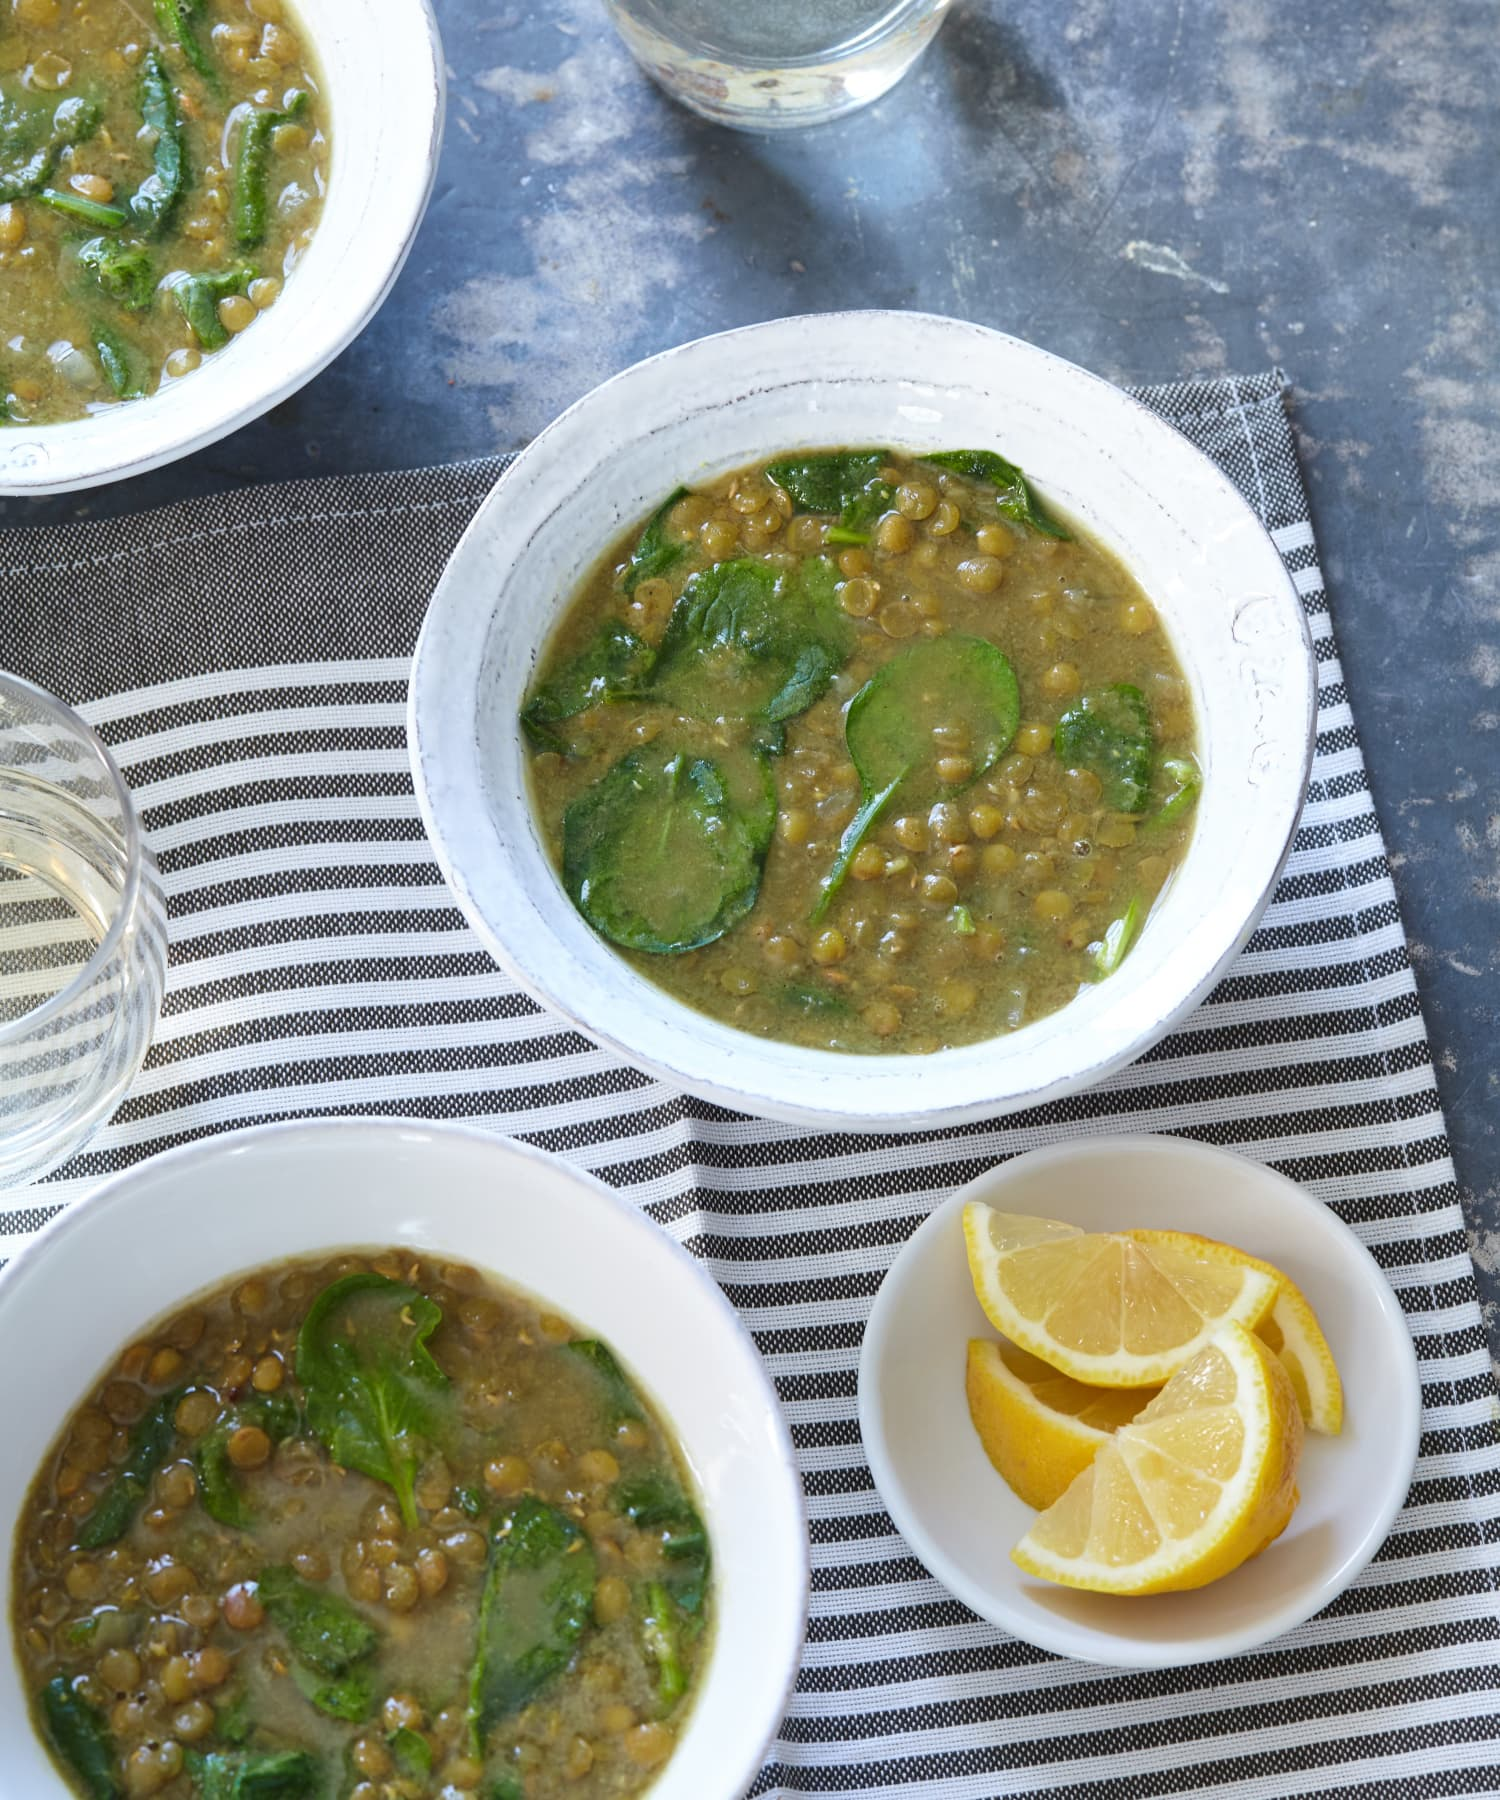 Spinach Soup Recipe Udupi Recipes: Recipe: Ethiopian-Style Spinach & Lentil Soup